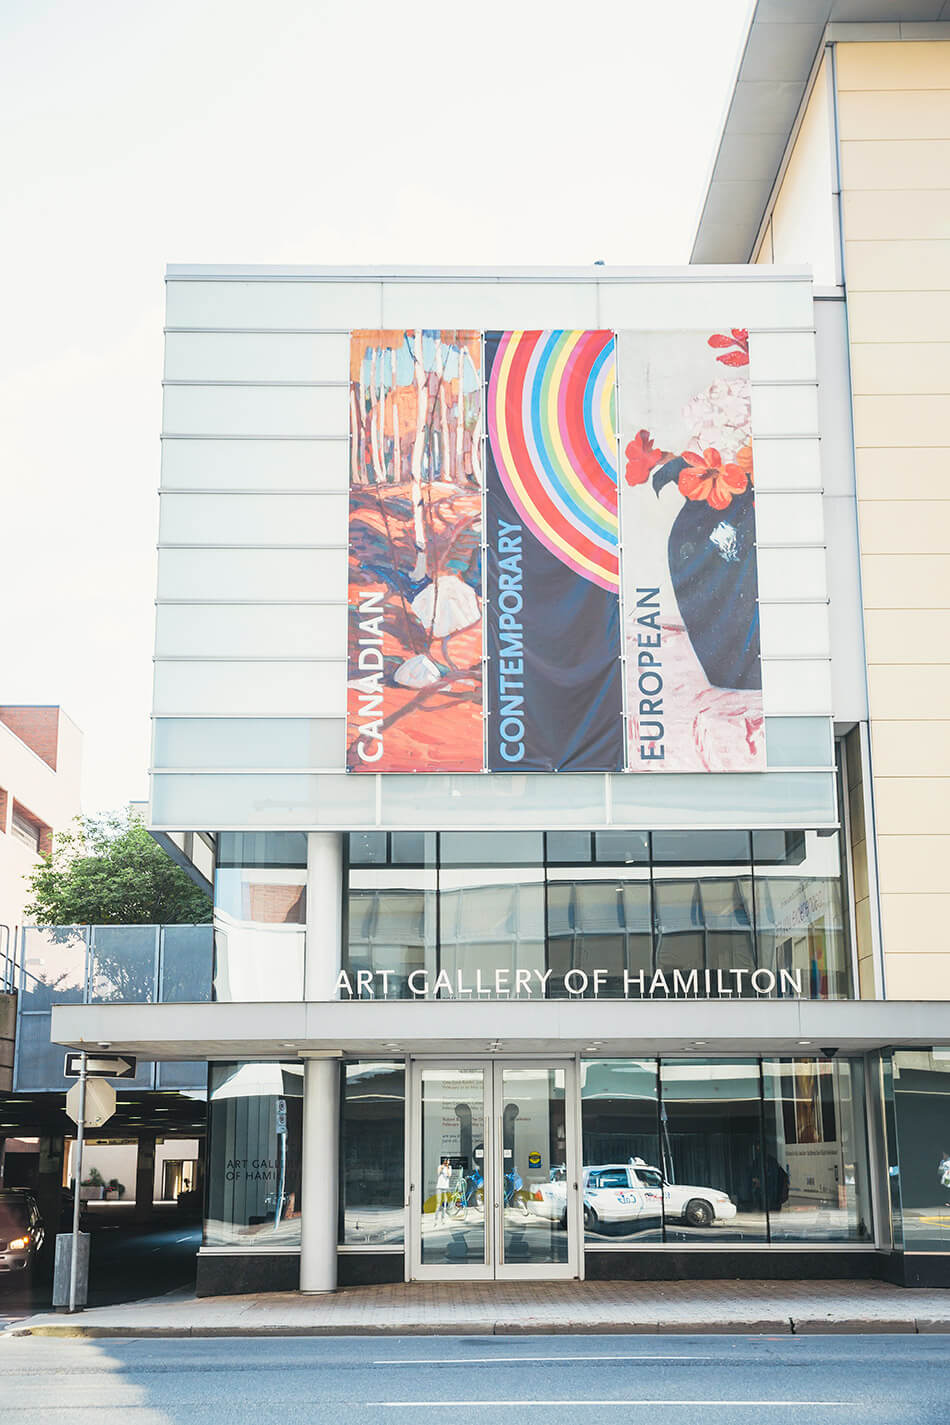 The Art Gallery of Hamilton